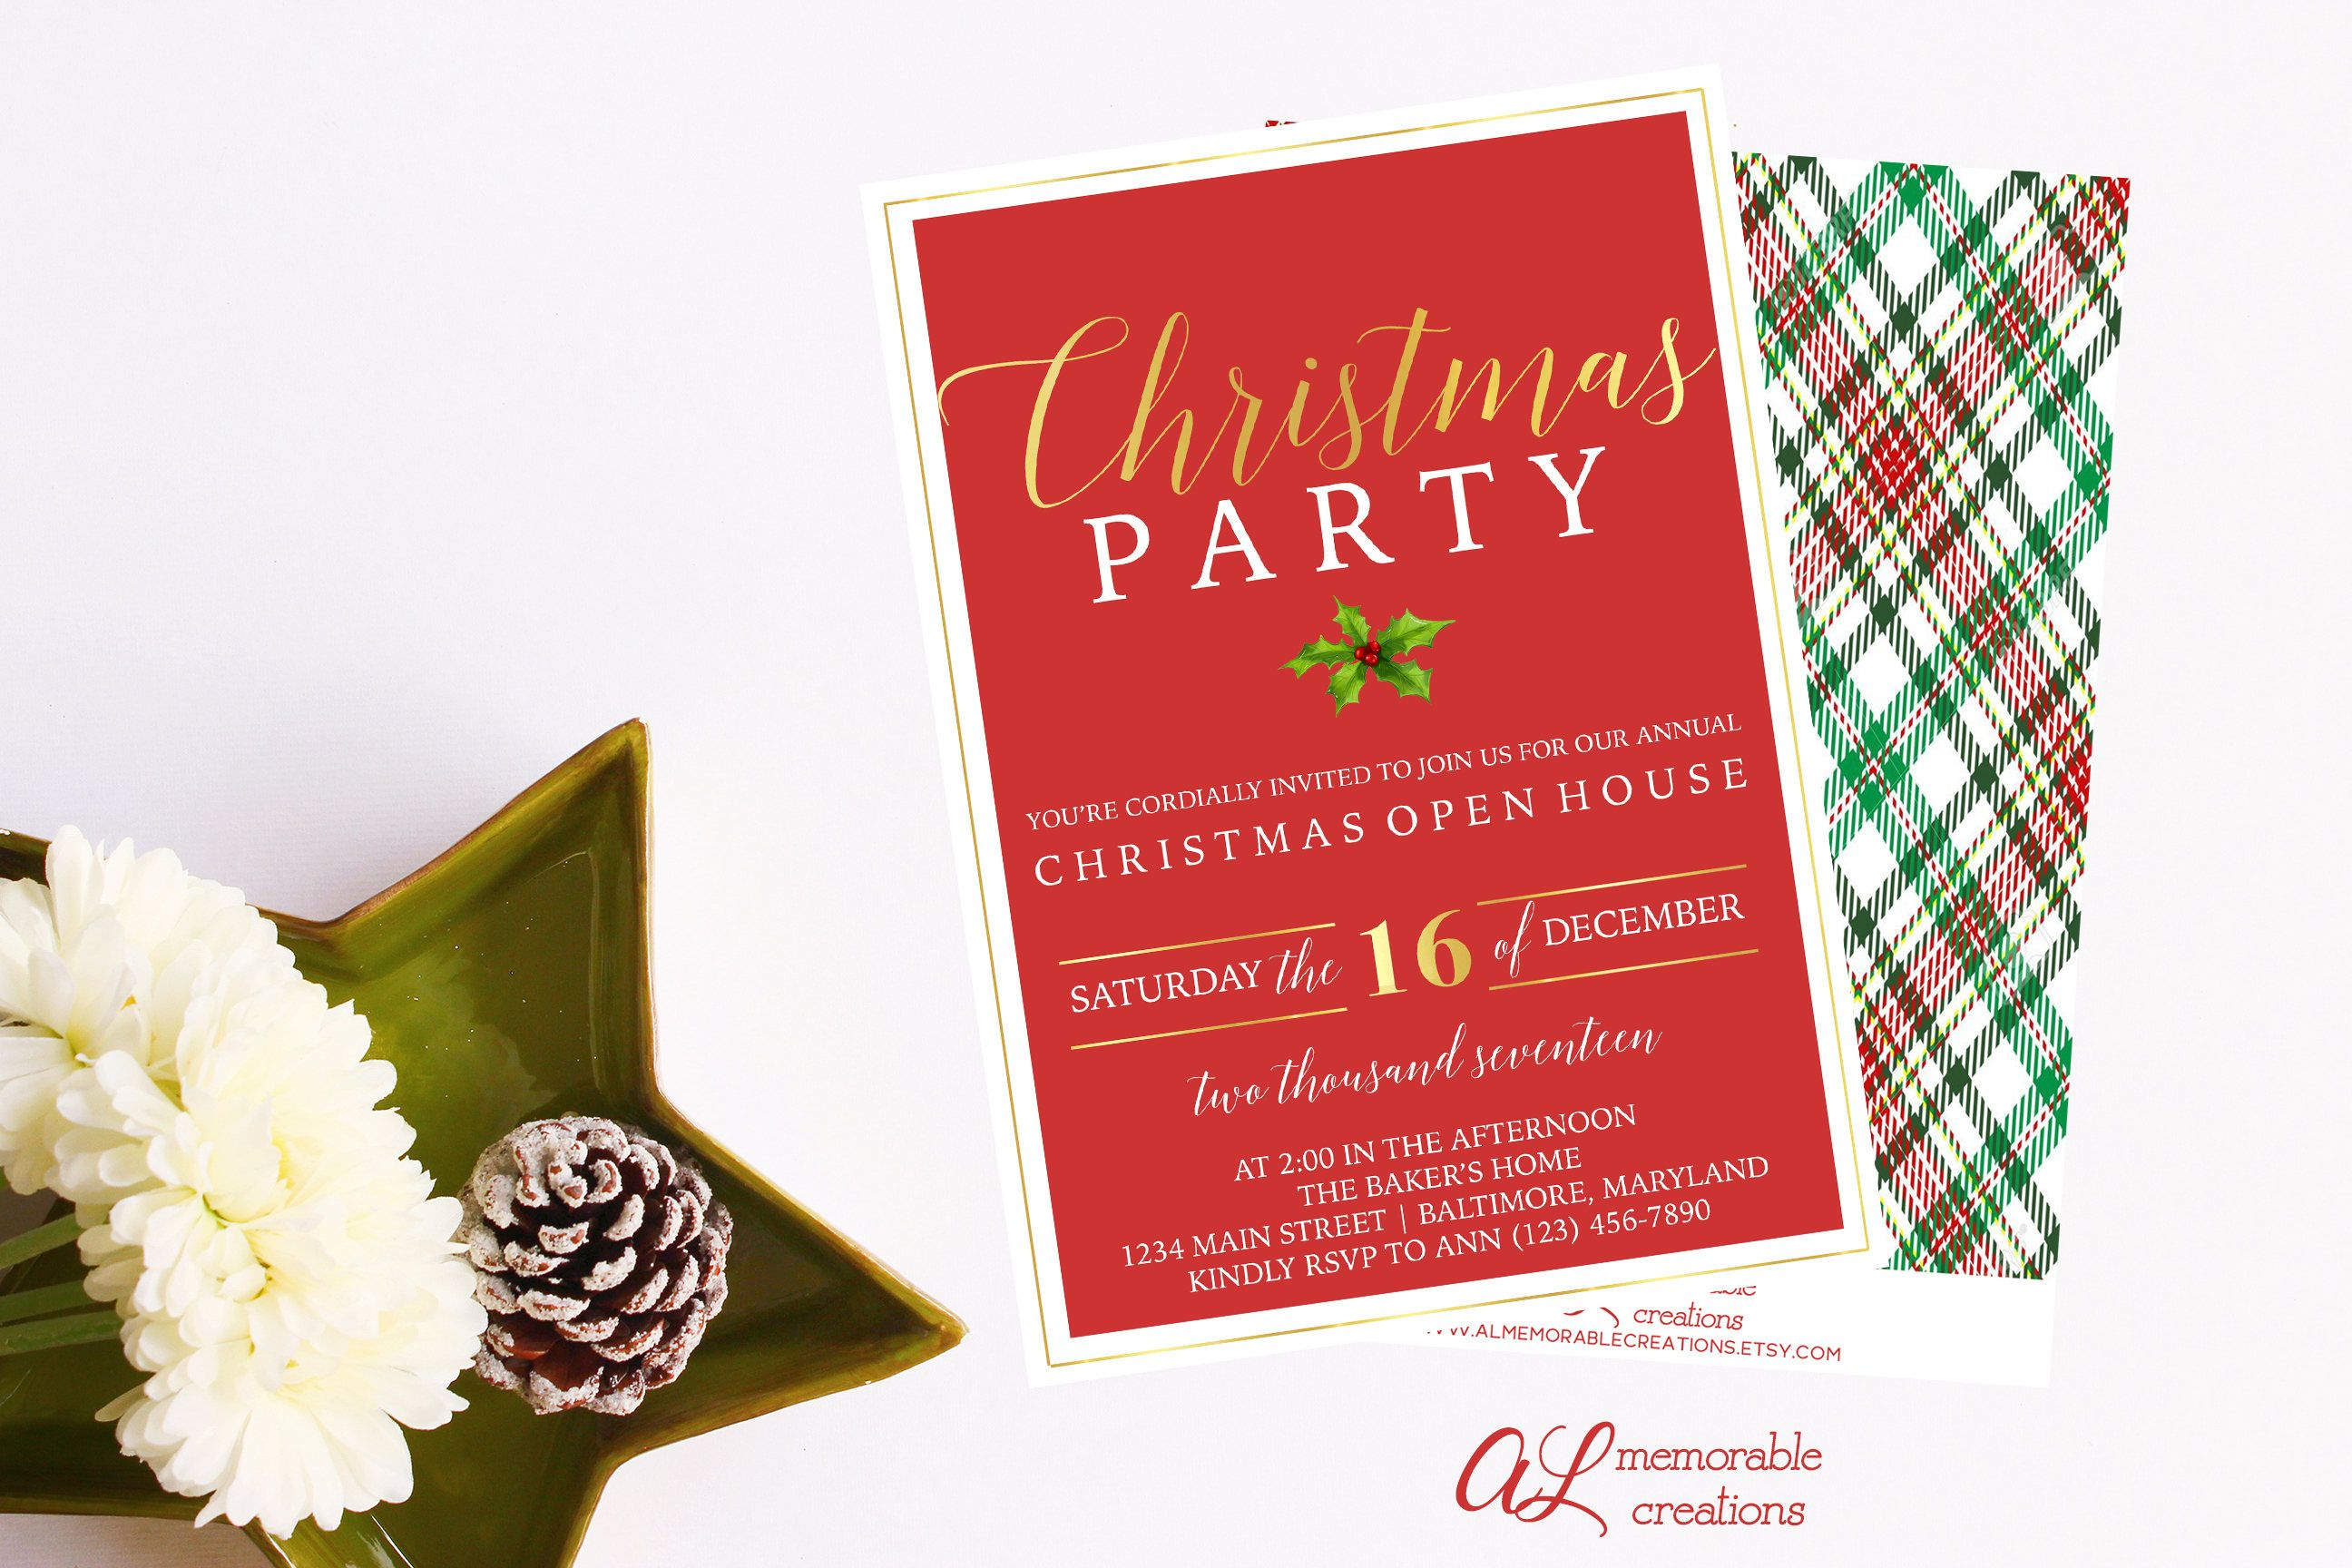 sample open house graduation party invitations%0A Modern Christmas Party Invitation  Christmas Invitation  Holiday Party   Christmas Open House  Red